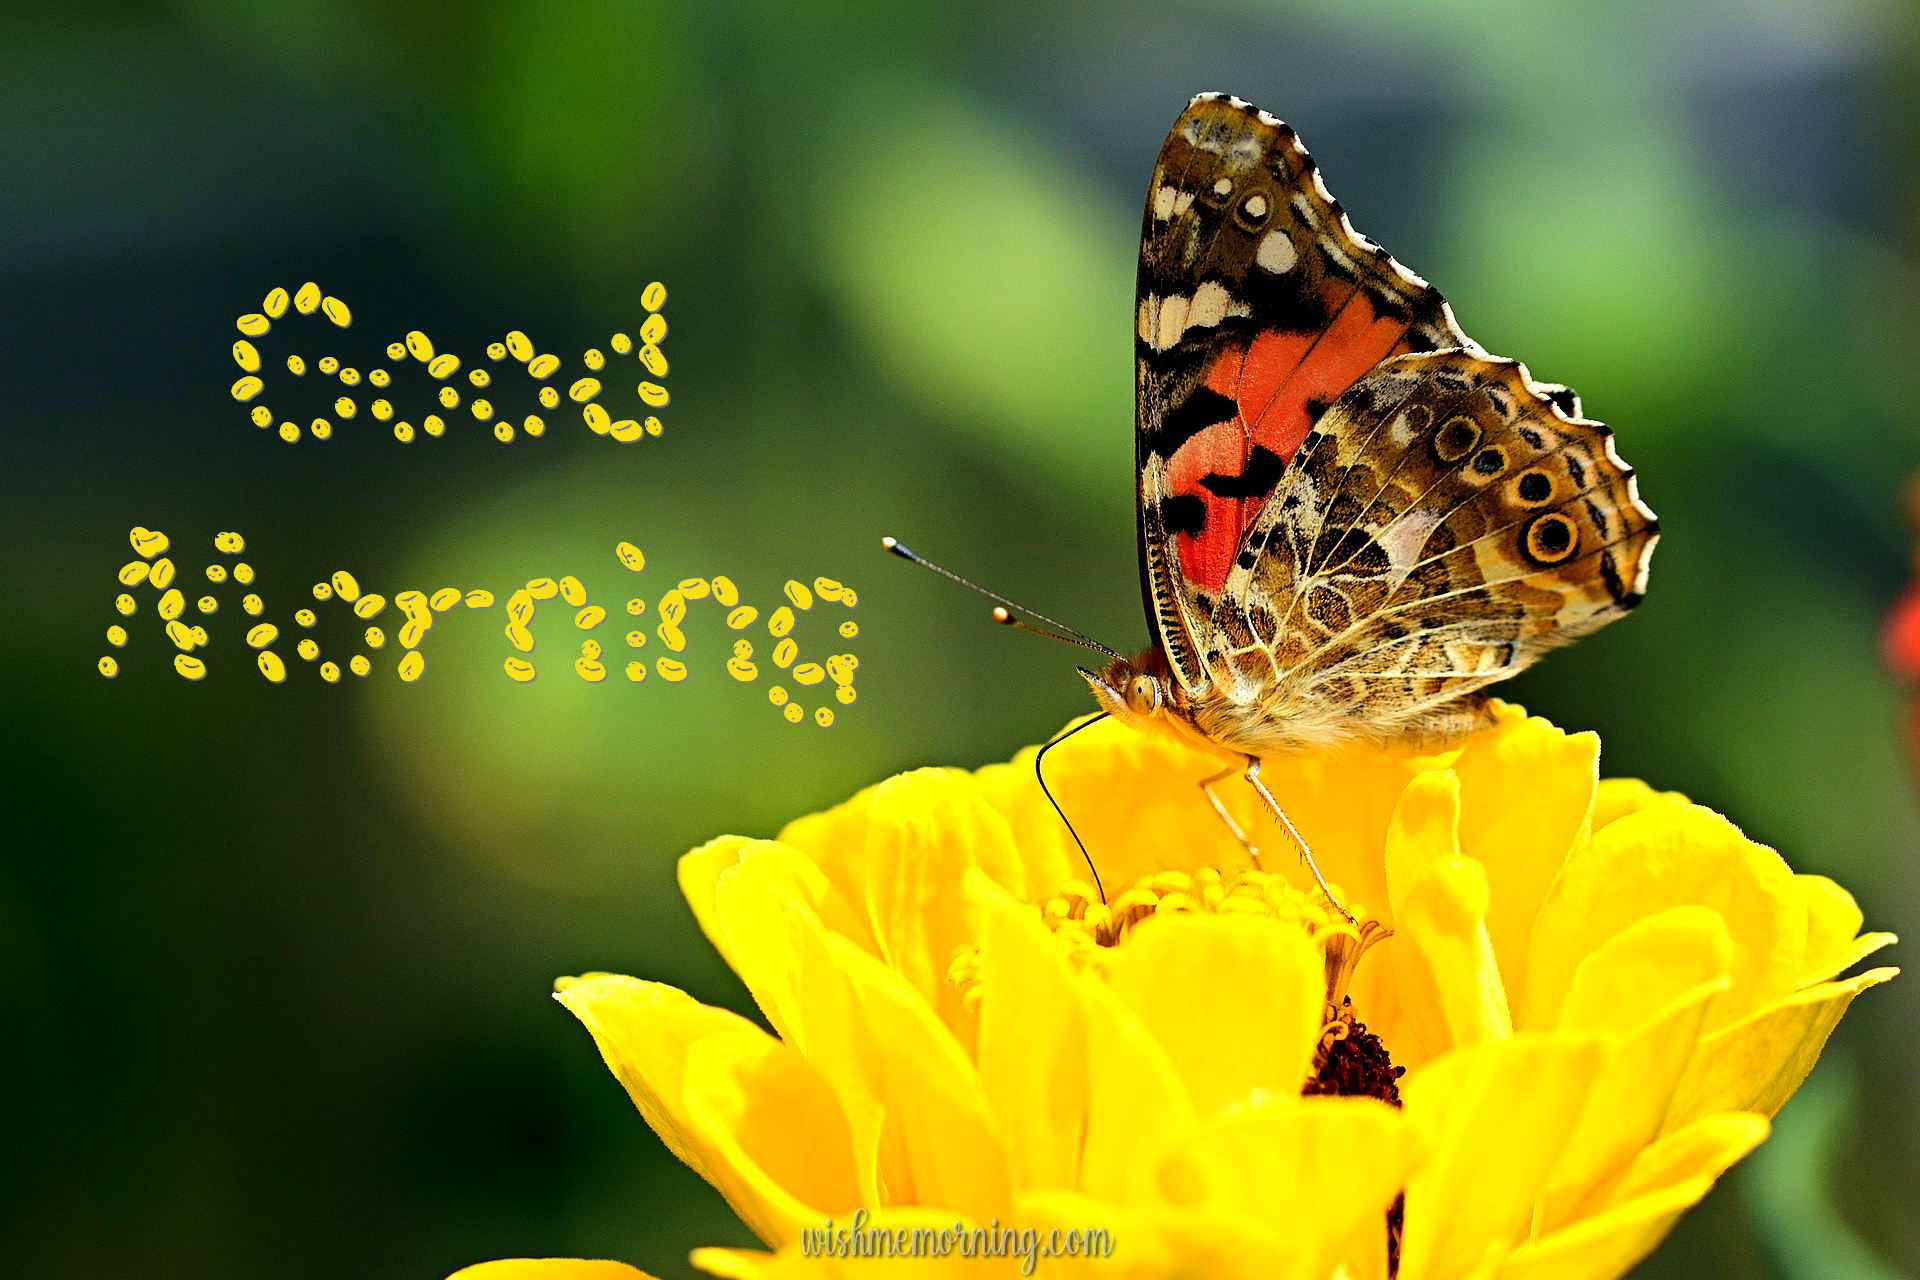 Beautiful Butterfly Good Morning Images wishmemorning.com 12